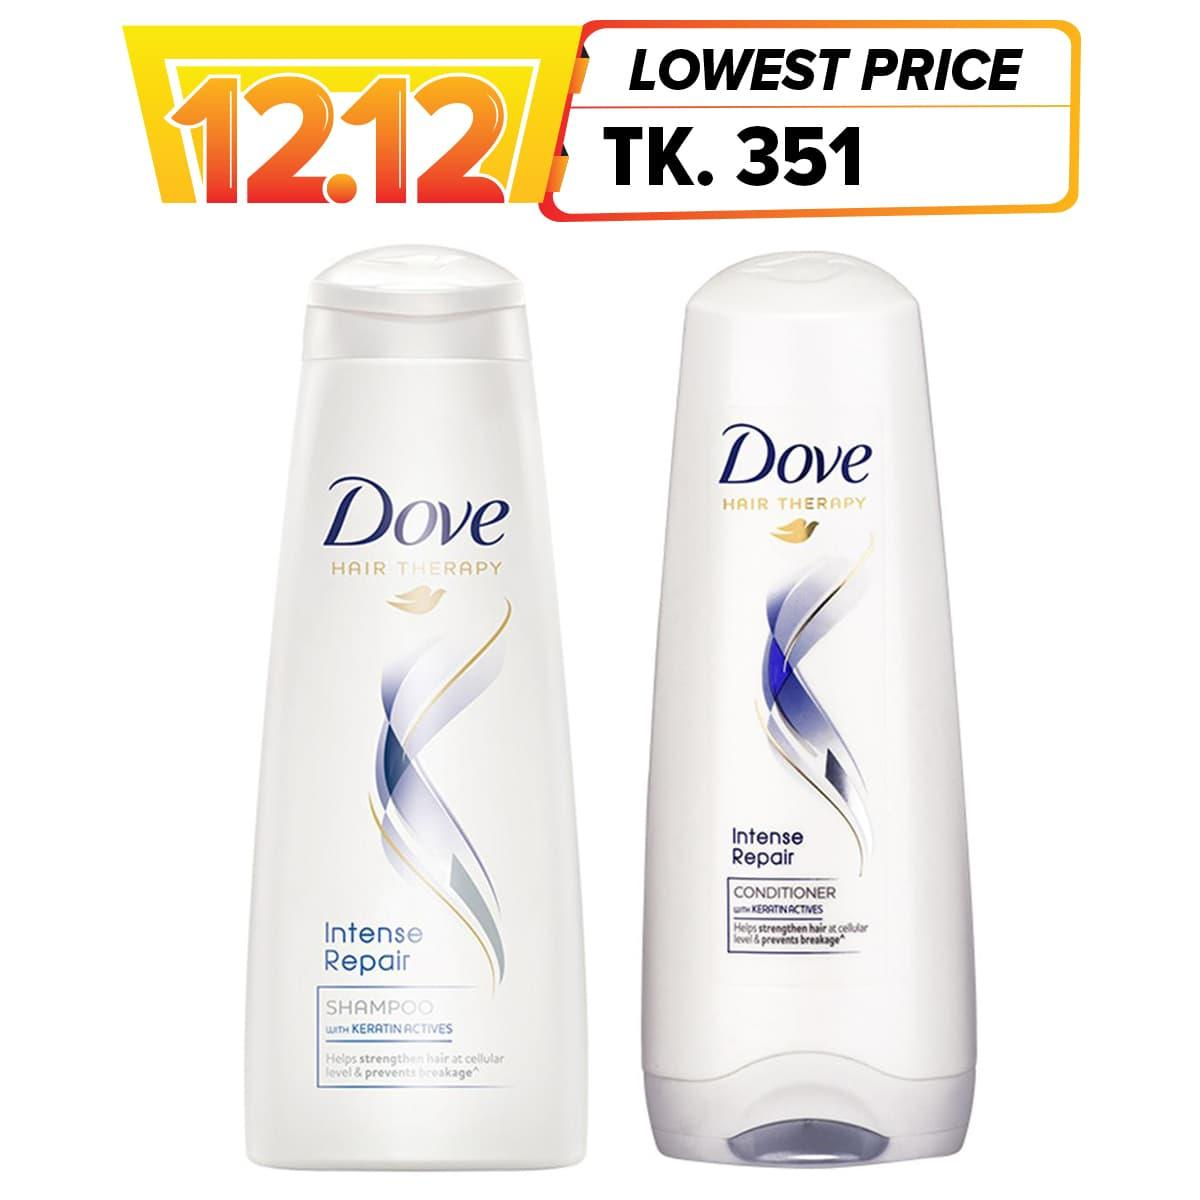 Hair Care Products In Bangladesh At Best Price Cussons Baby Shampoo Coconut Oil And Aloe Vera 100 Ml Dove Conditioner Intense Repair Combo Pack 340ml